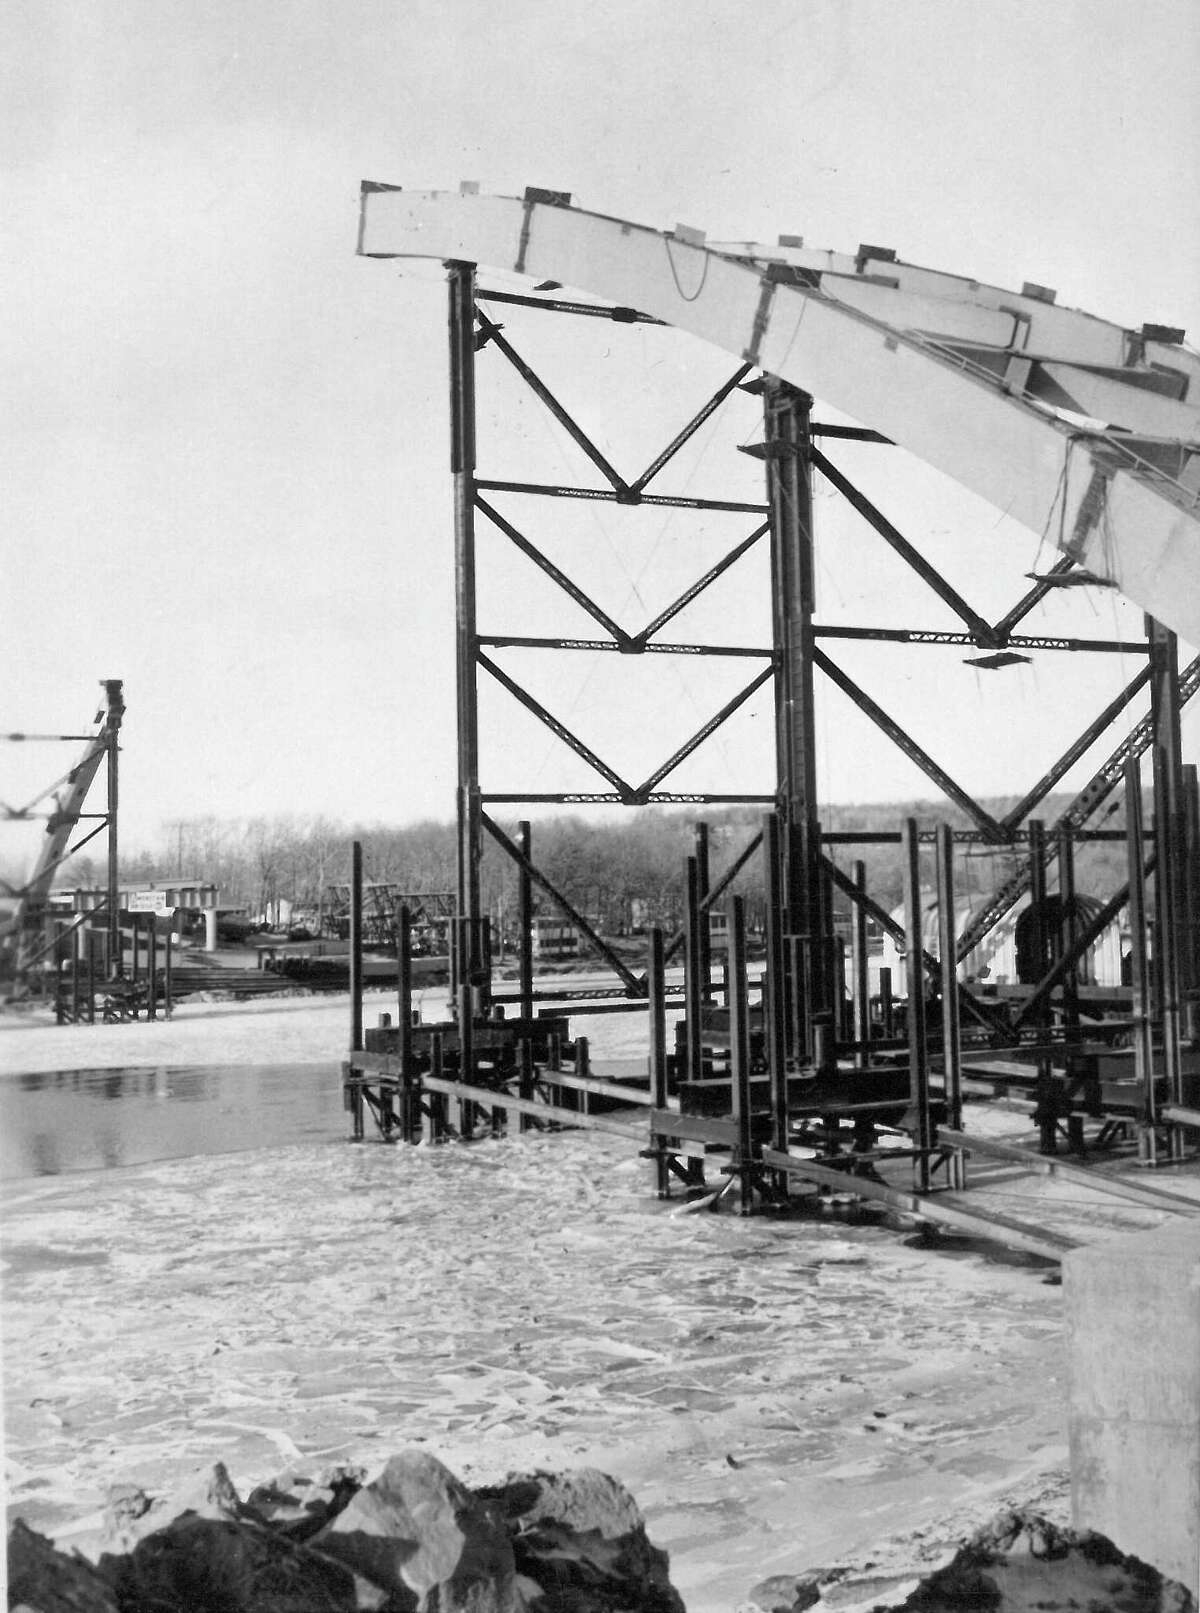 Construction of the Thaddeus Kosciusko Bridge, which carries the Northway across the Mohawk River, is constructed in the late 1950s. The bridge opened in 1959. (DA Collins Companies)